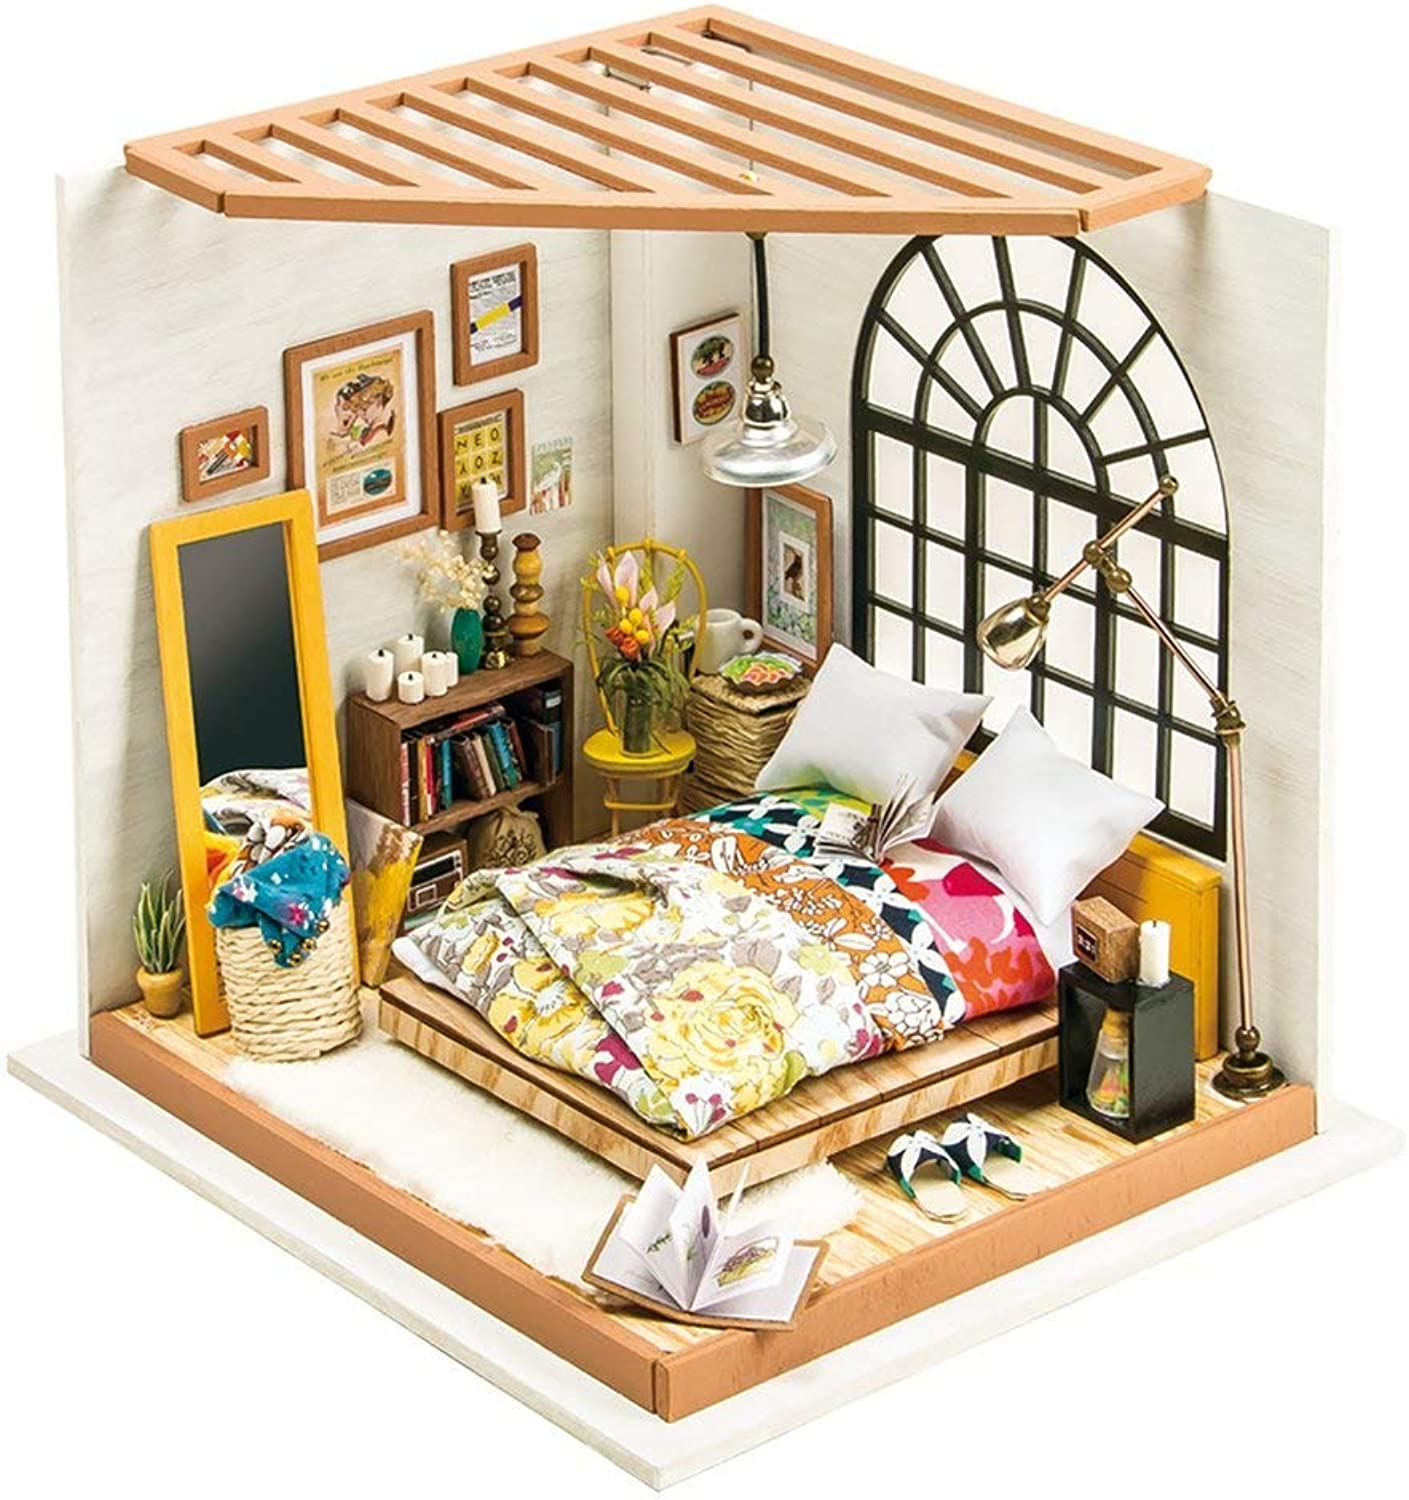 Doll House DIY Set Wooden Tool Bag Handmade Alice's Dreamy Bedroom Doll House Model Toy Suitable for Girls and Boys,187  203  184MM